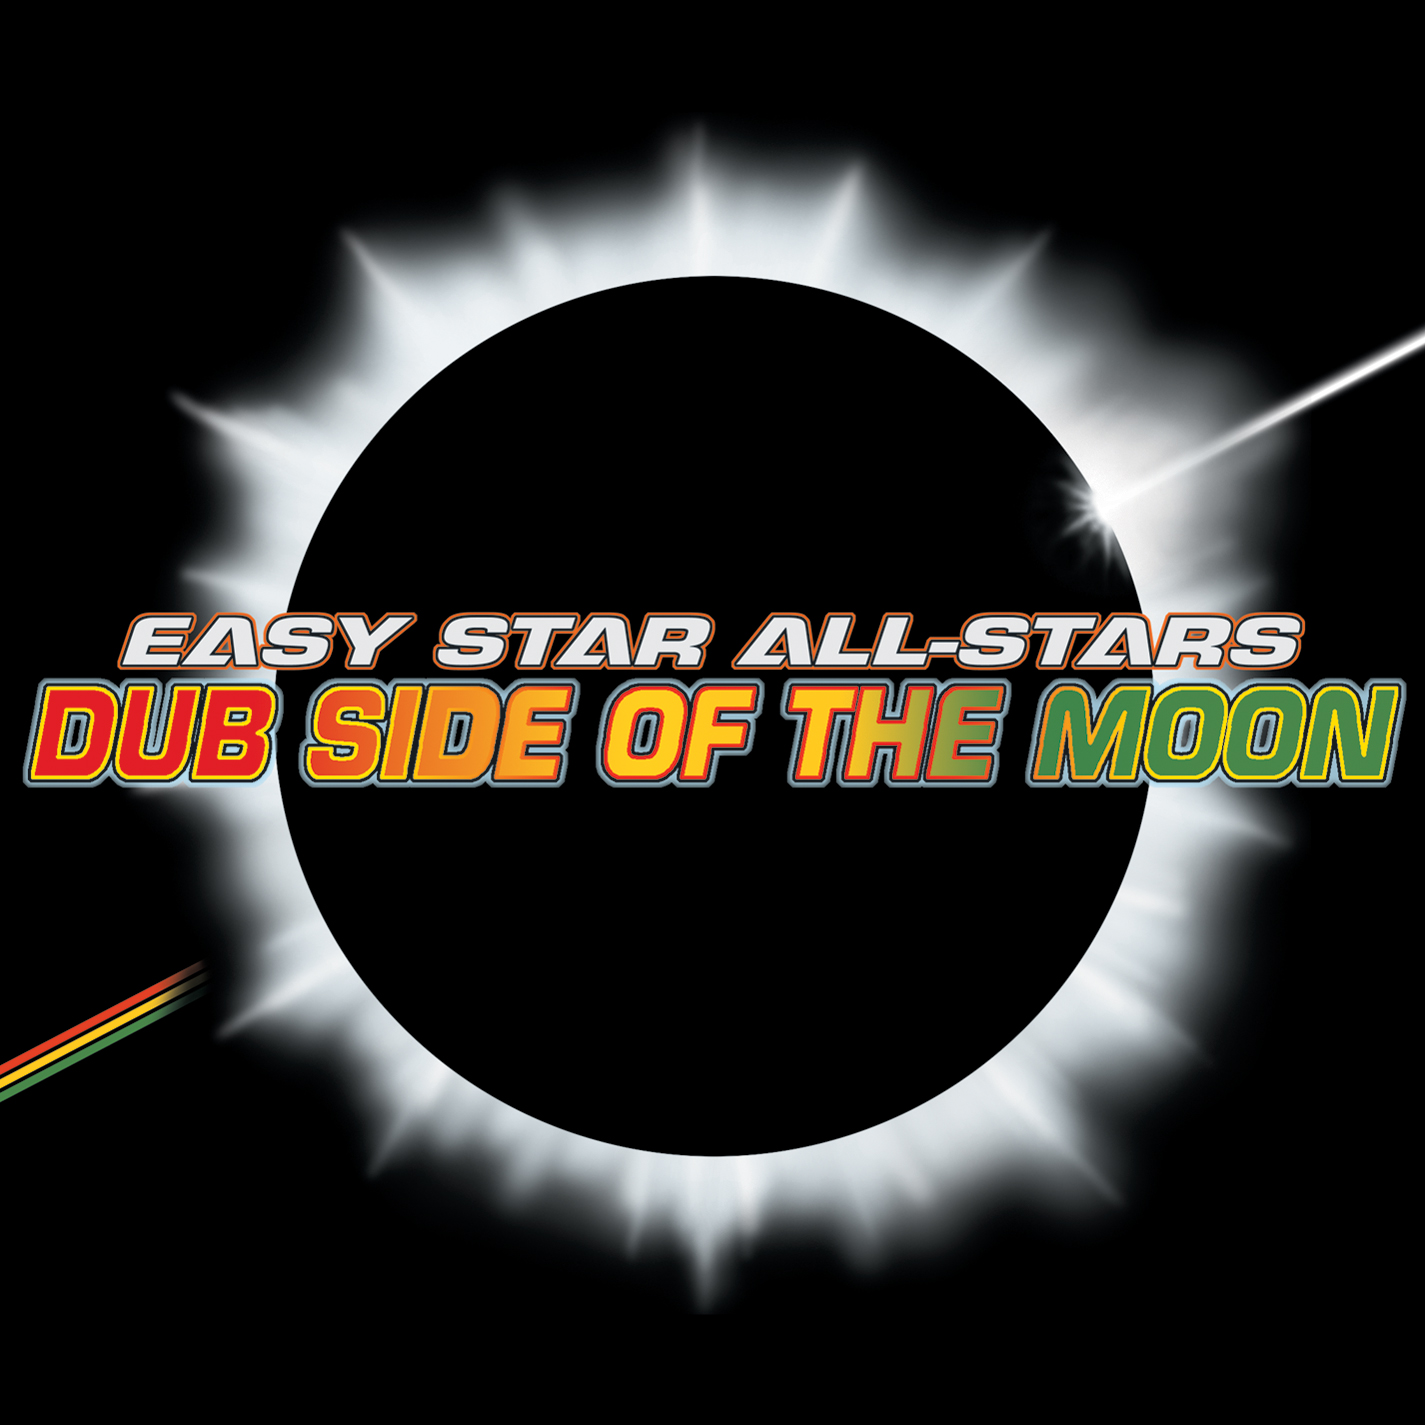 Dub Side of the Moon - Wikipedia